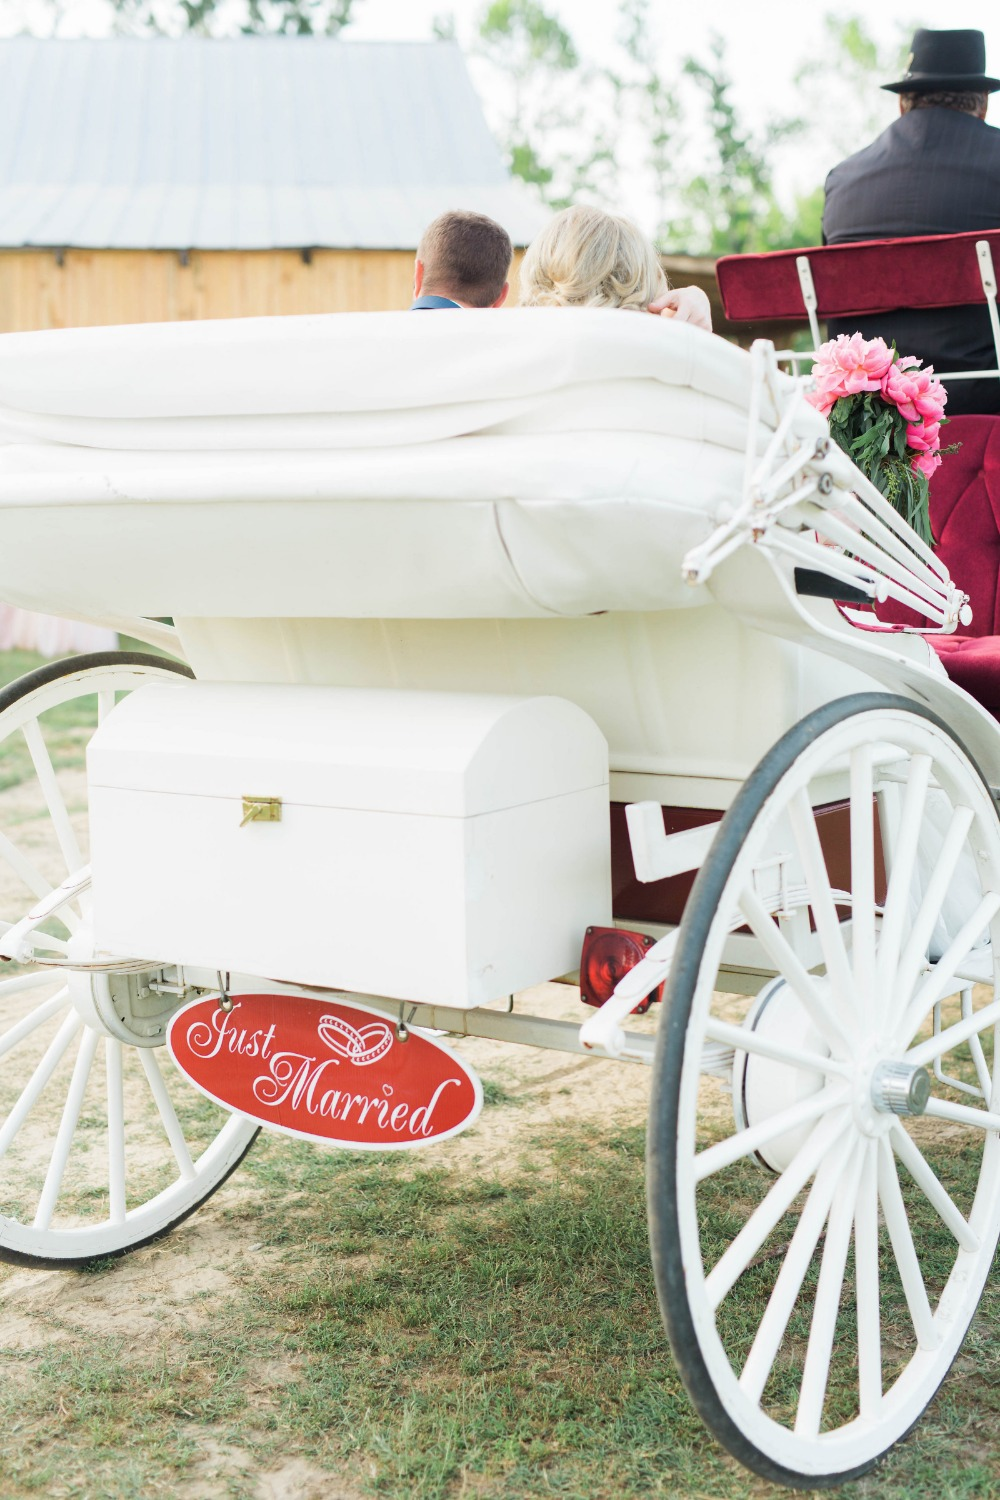 Just married carriage sign